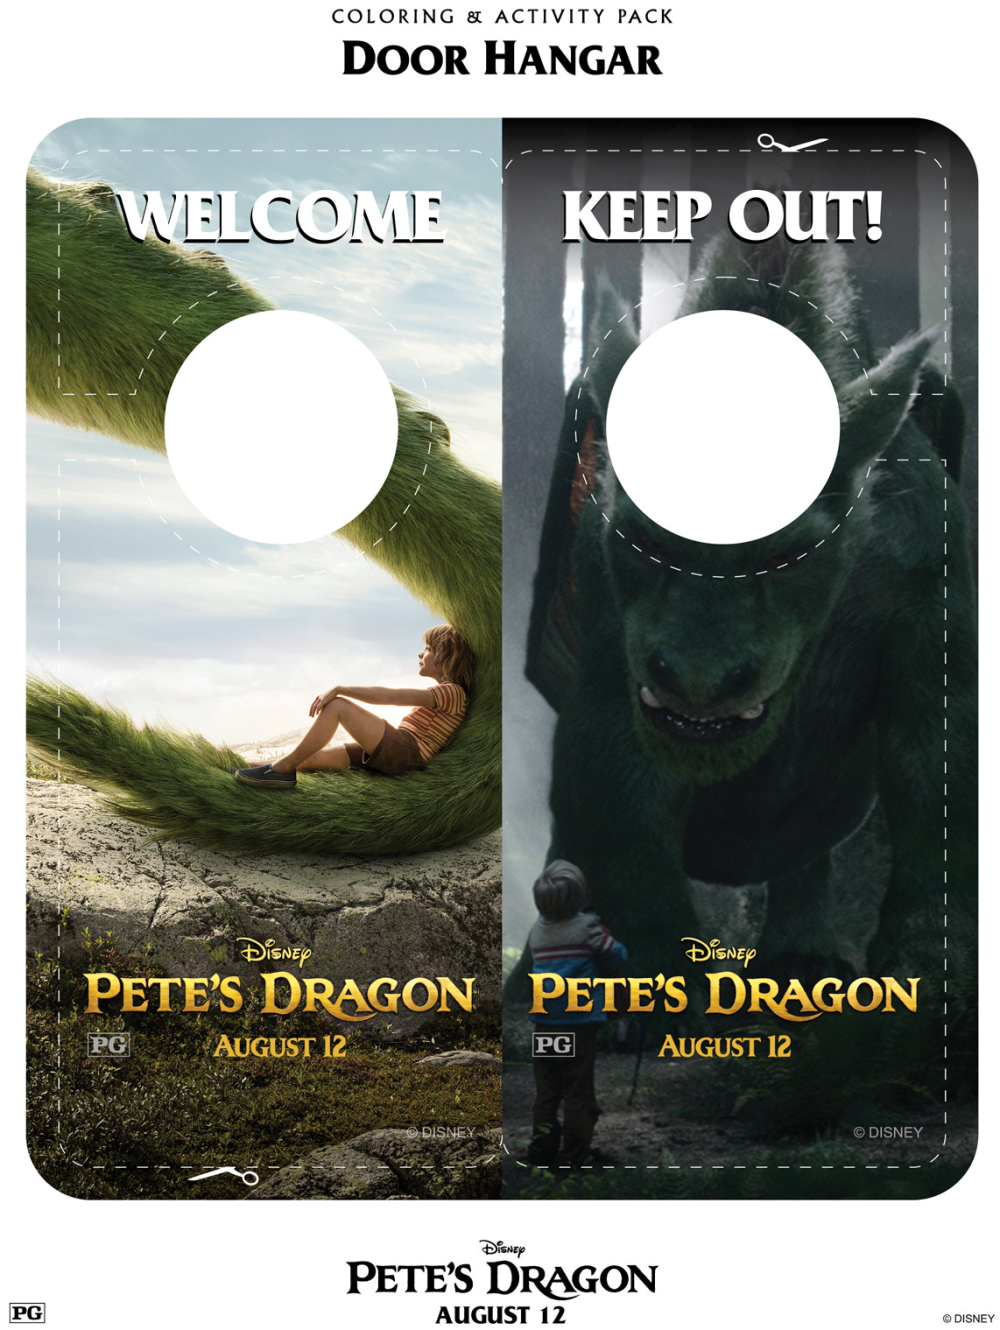 Download free printable activity sheets for Disney's Pete's Dragon and fall in love all over again! Movie to hit theaters August 12, 2016.